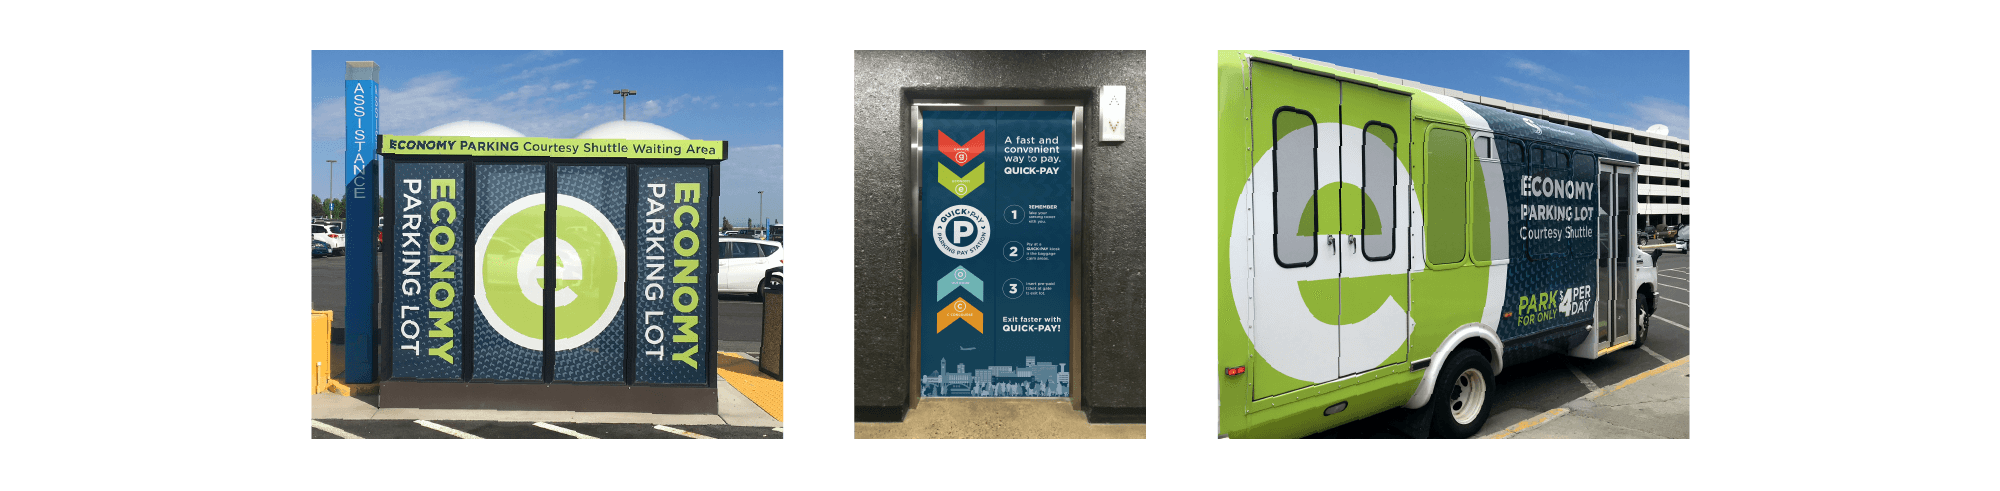 airport parking branding inspiration for Spokane international airport